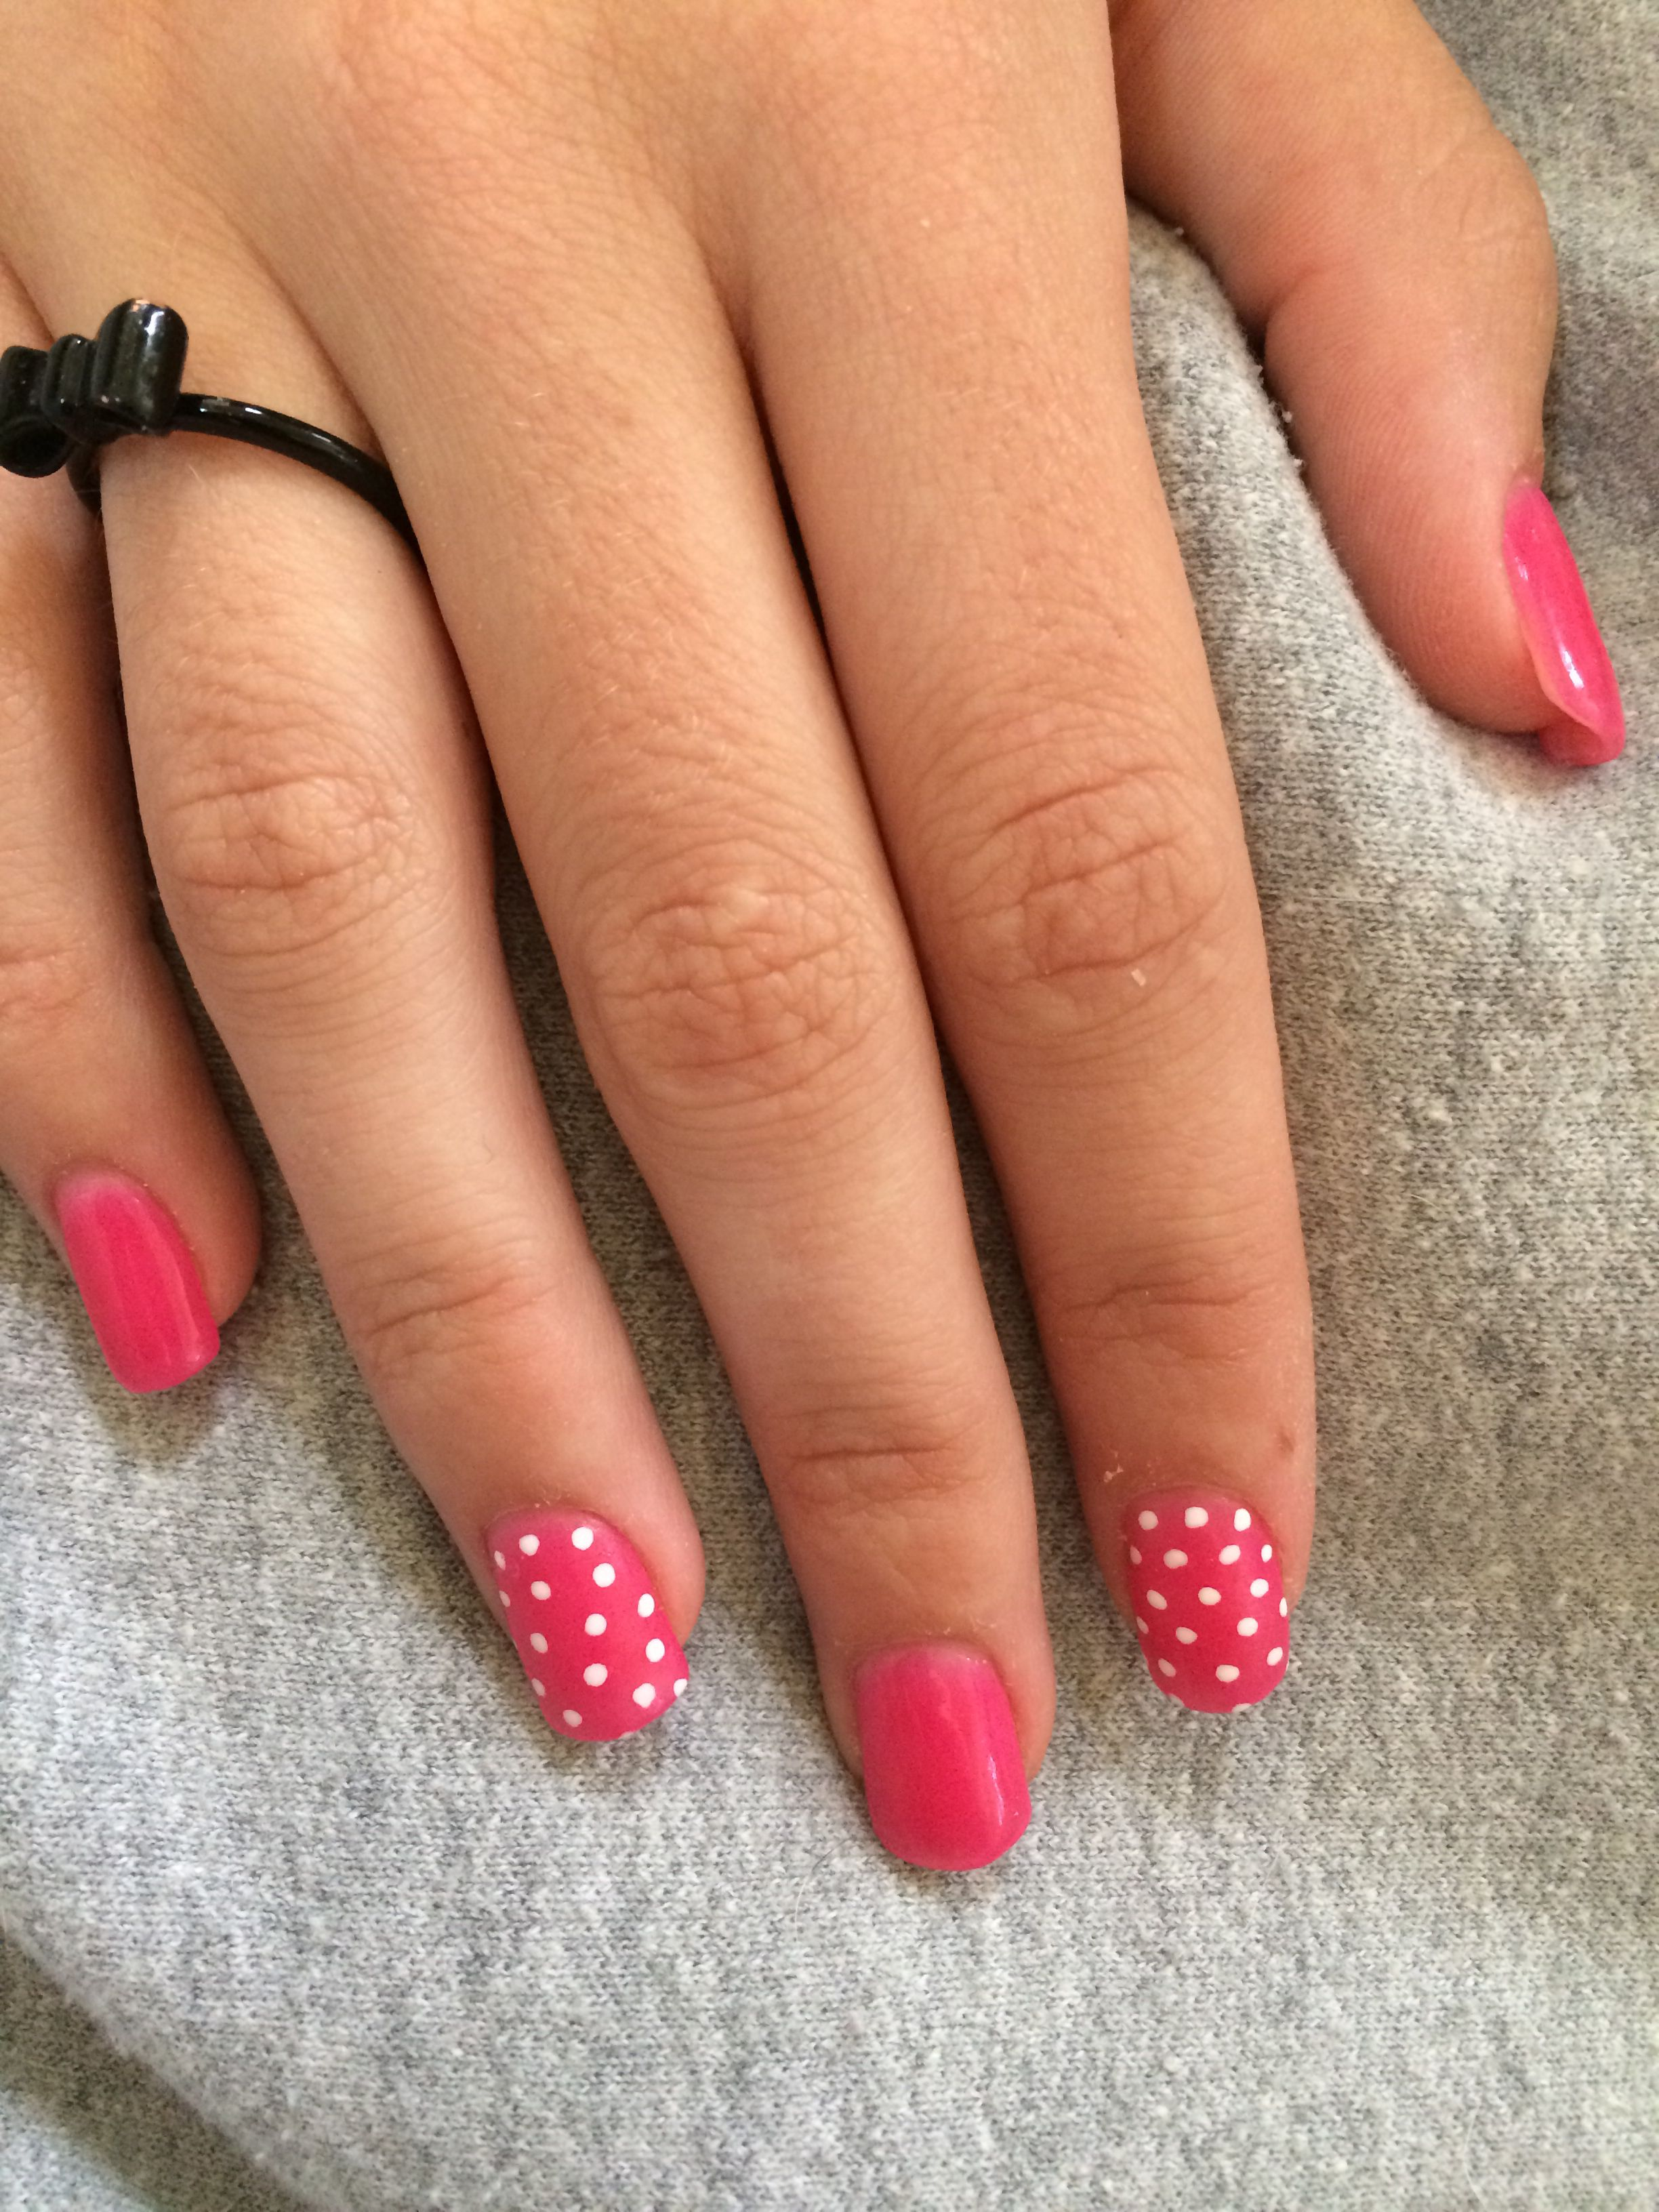 New color Tulip ANC. Amazing Nail Concepts done by Basha at Lighten ...